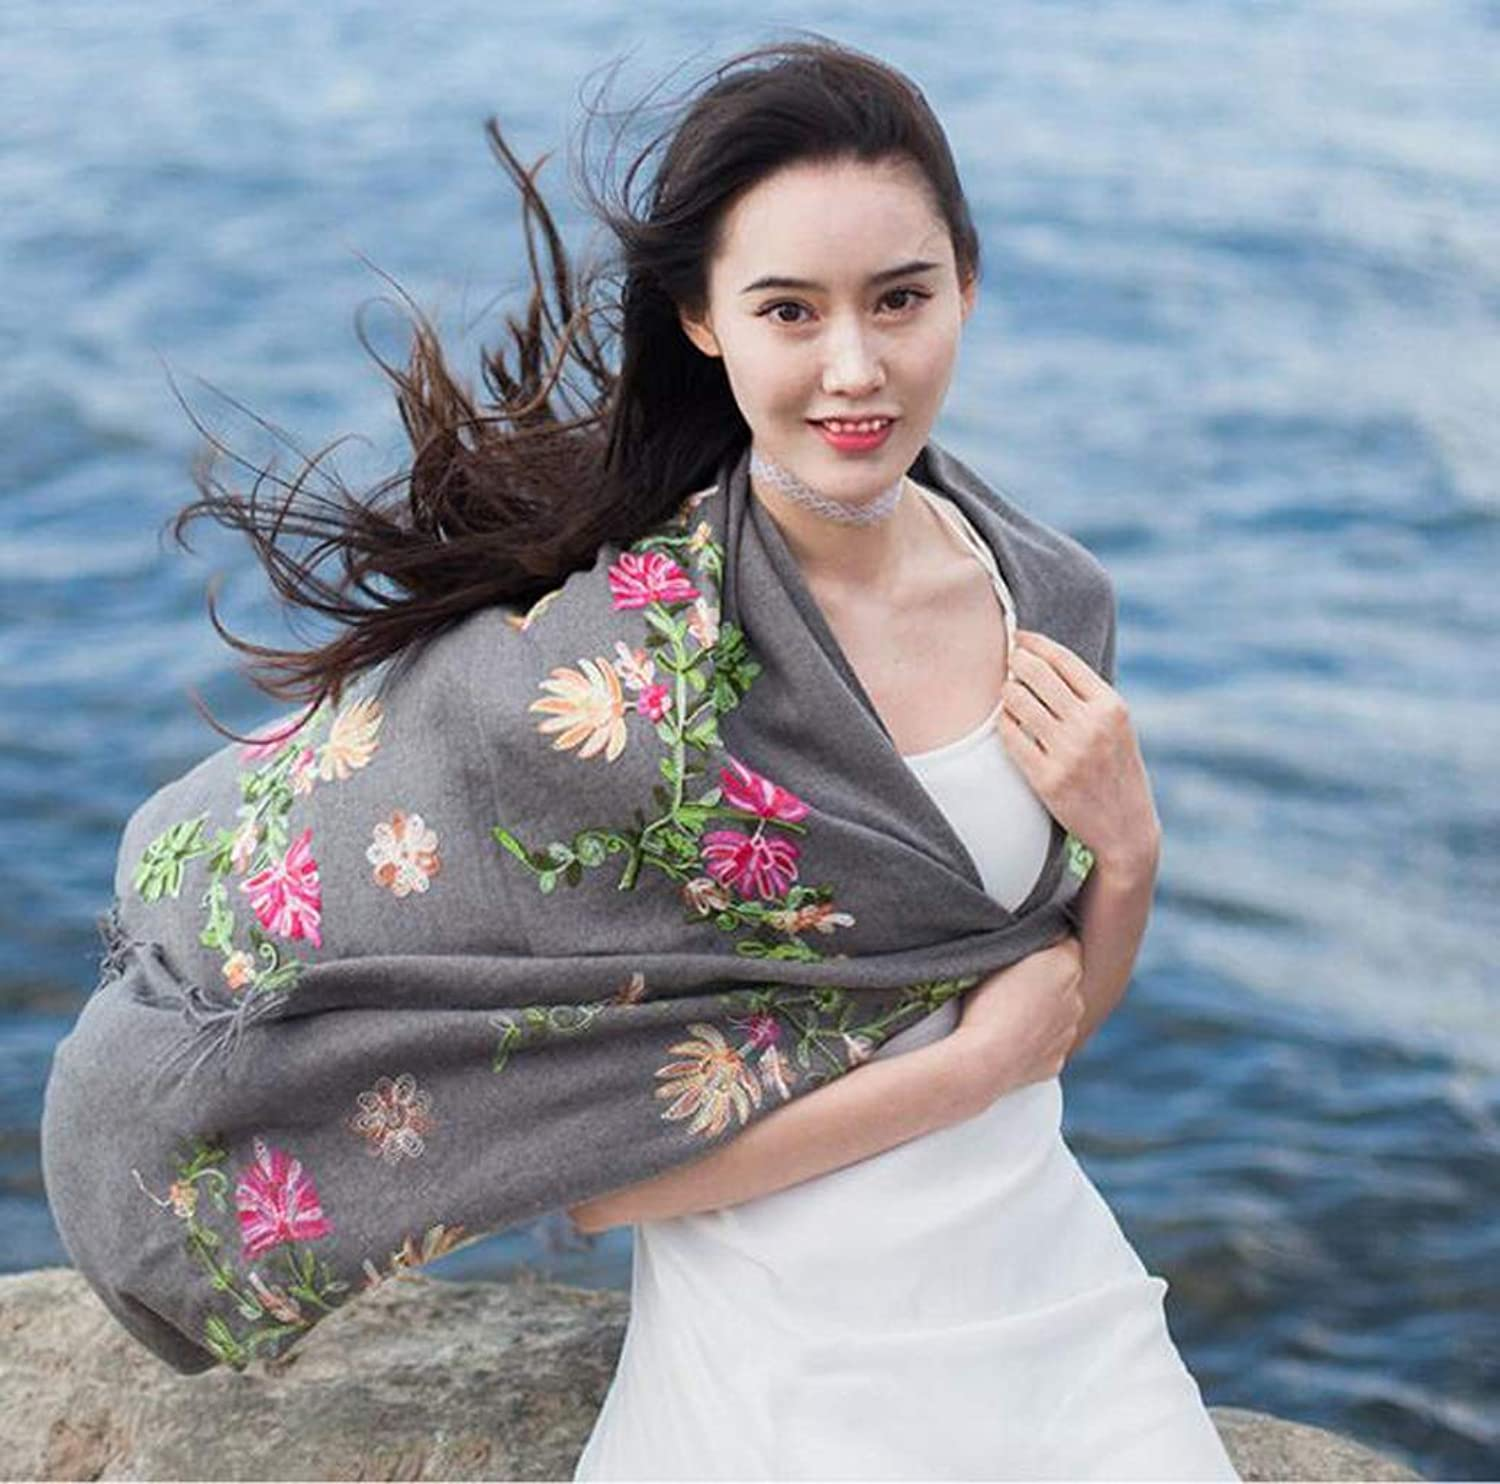 JUN Embroidered Flower Scarf Cashmere Women's Wild Shawl National Wind Thickening Dualuse Cloak (color   C)